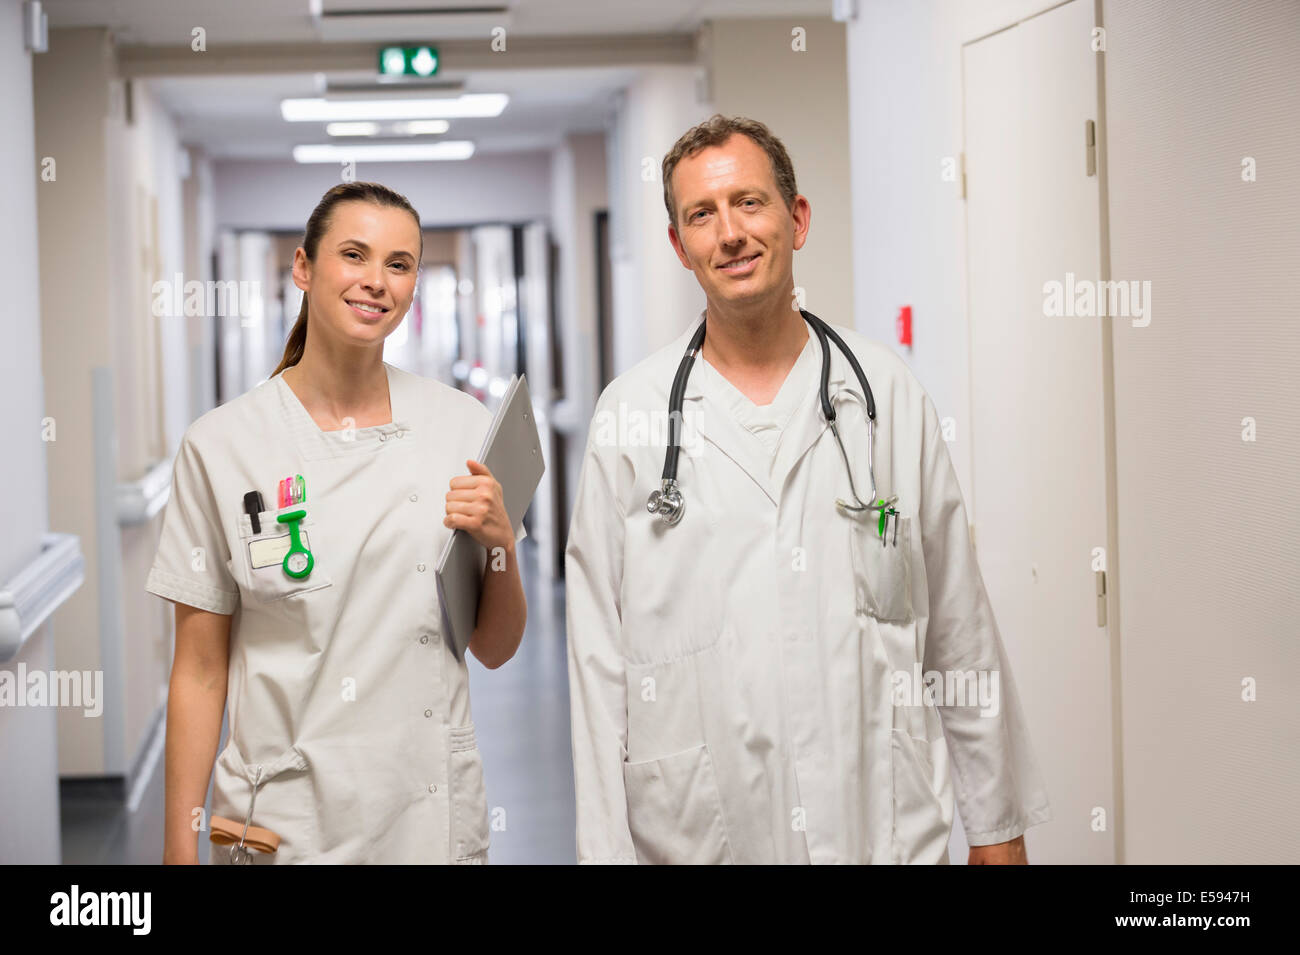 Doctor and female nurse smiling - Stock Image